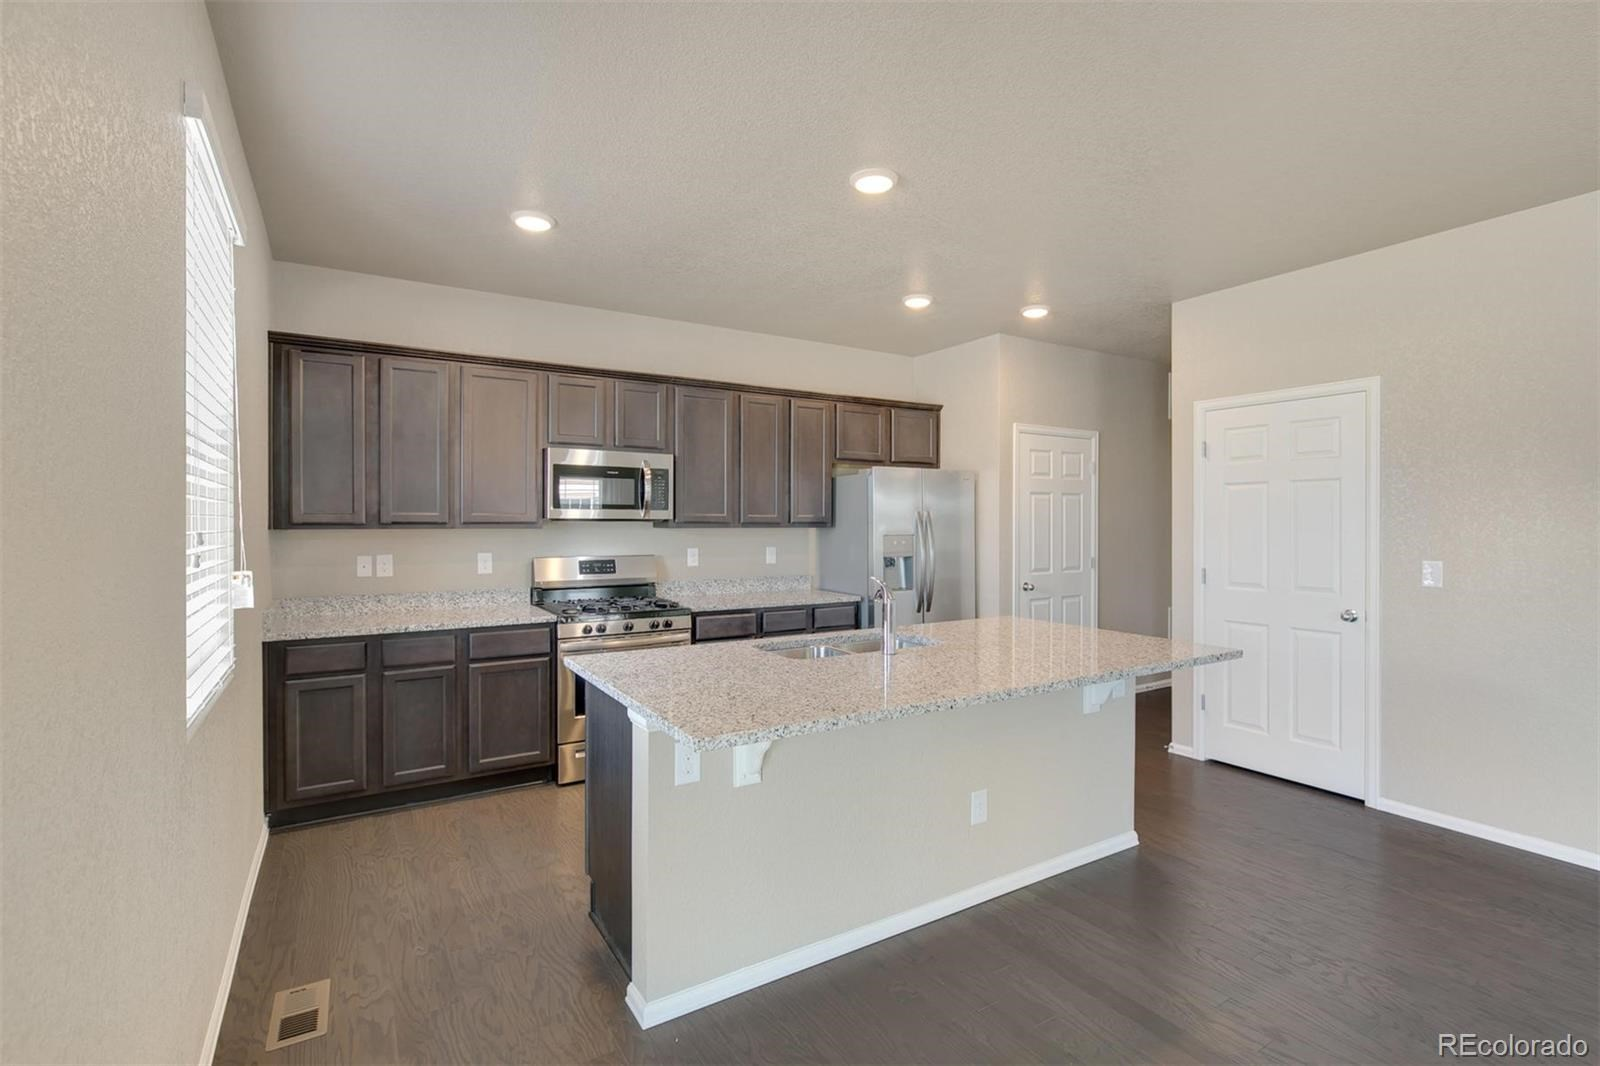 MLS# 4867430 - 5 - 915 Camberly Drive, Windsor, CO 80550